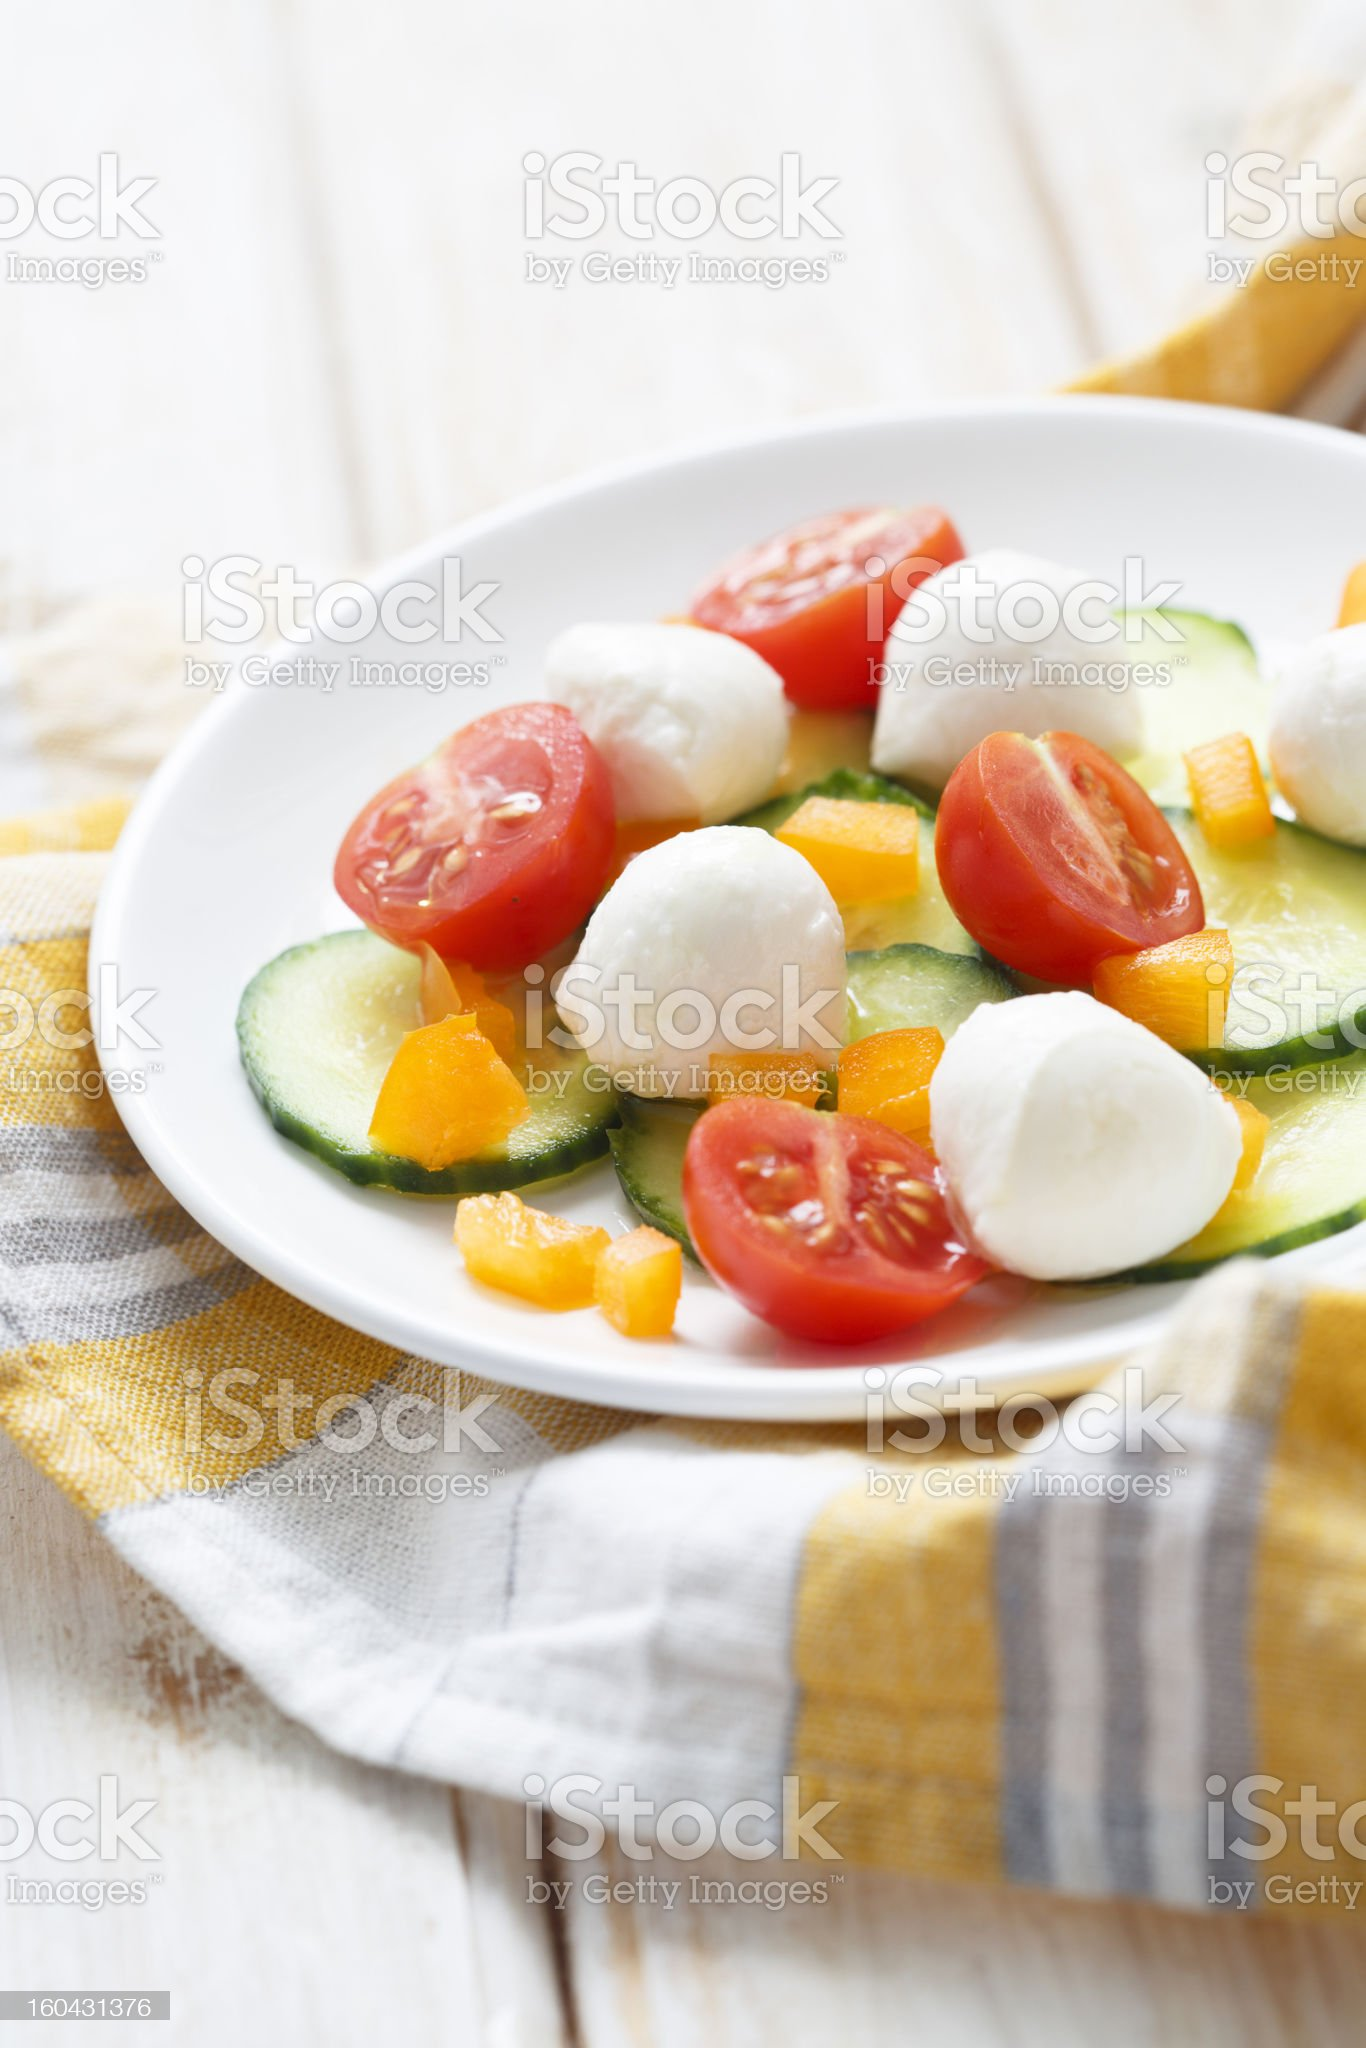 Mozzarella and vegetables salad royalty-free stock photo